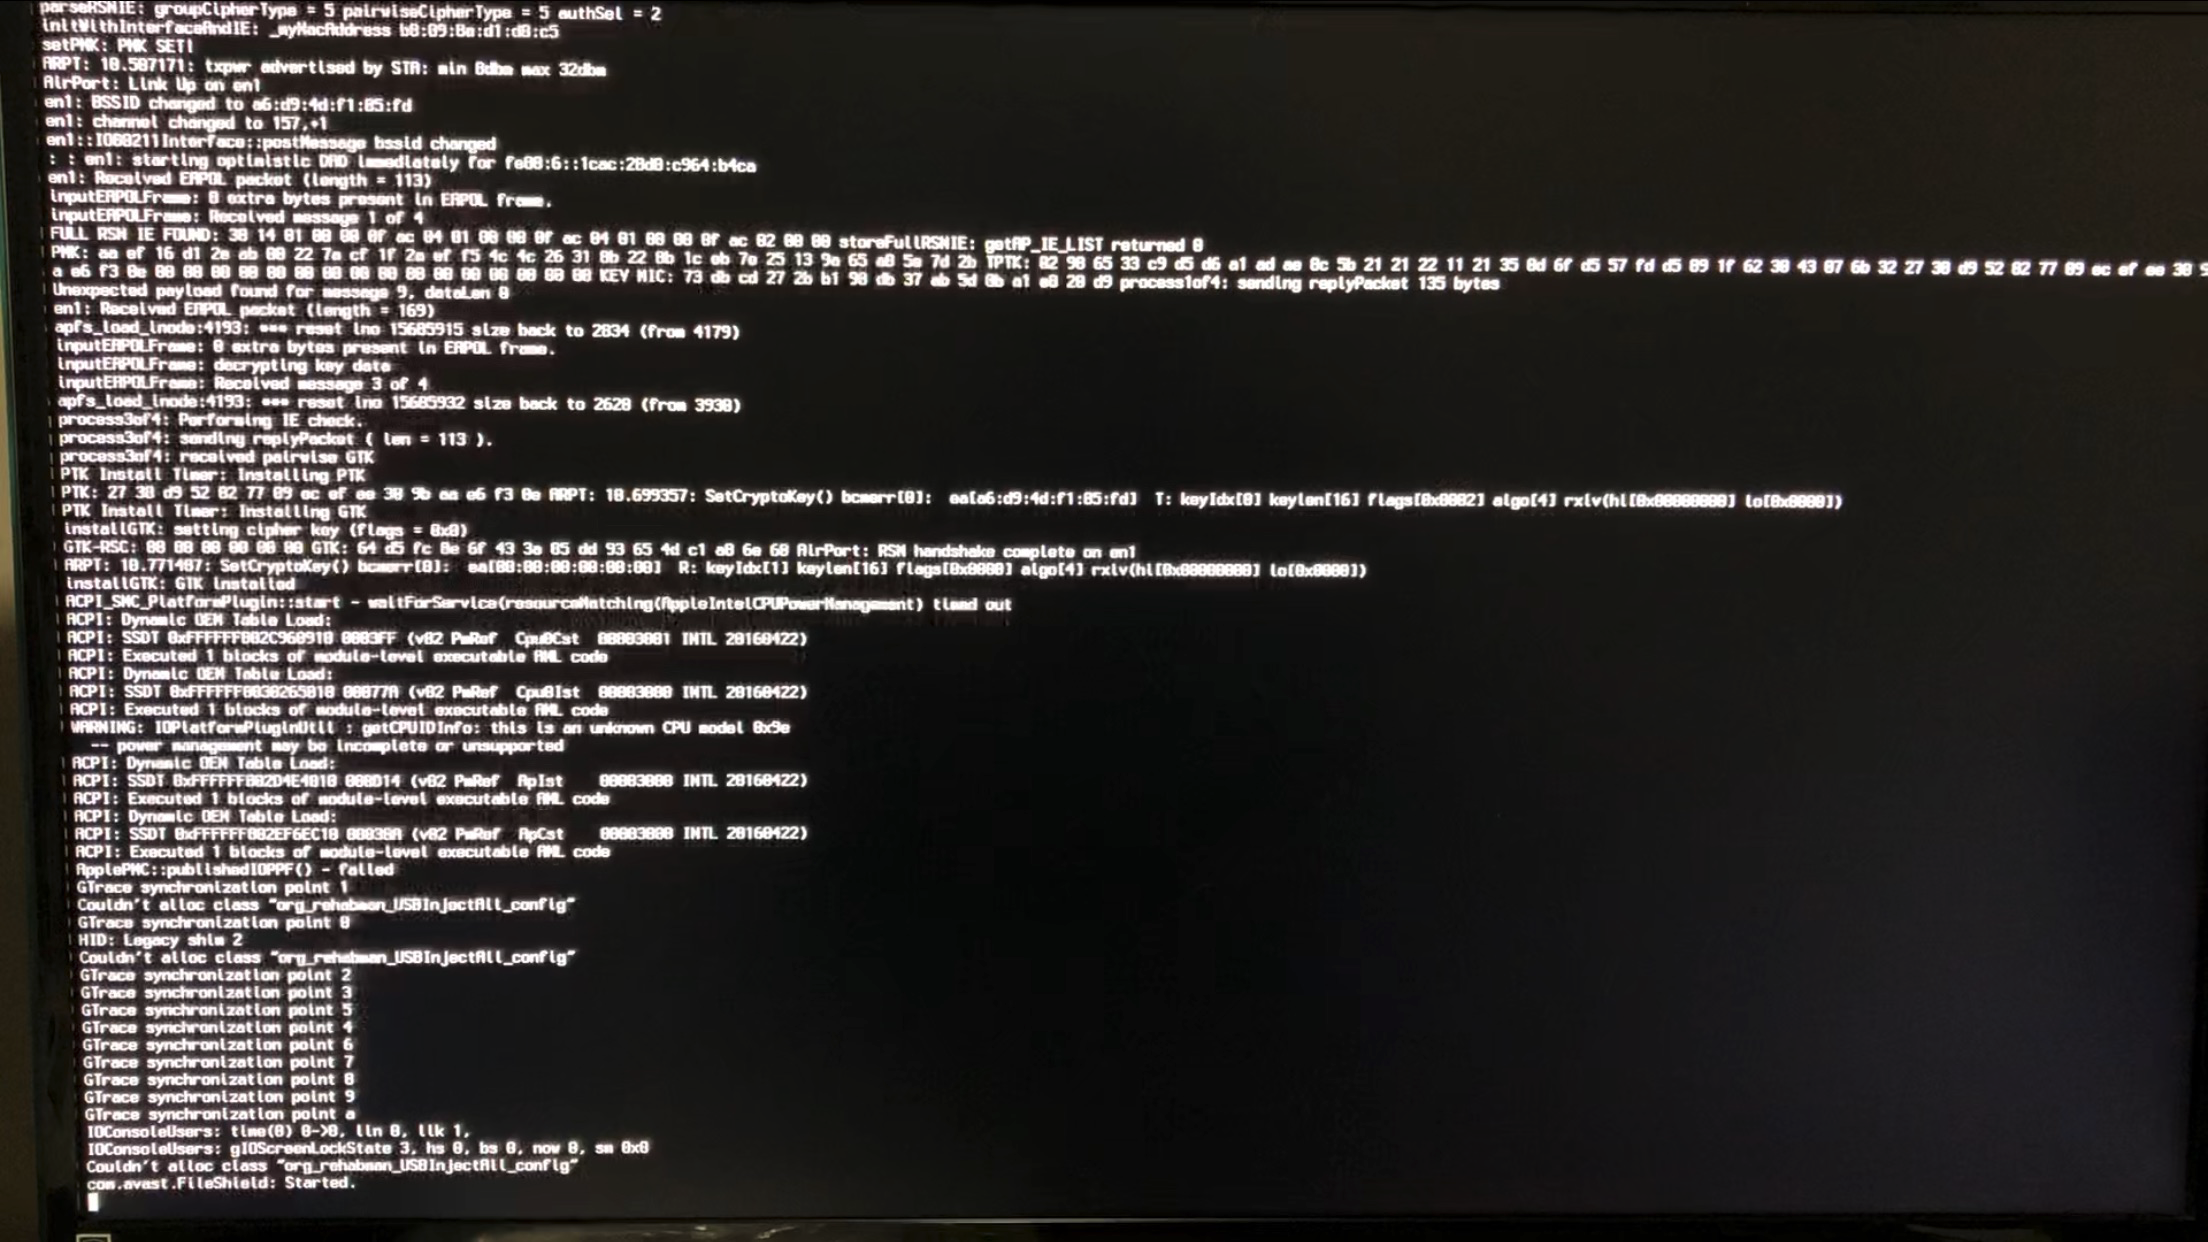 Going to black screen after clover boot (AMD Pro WX7100